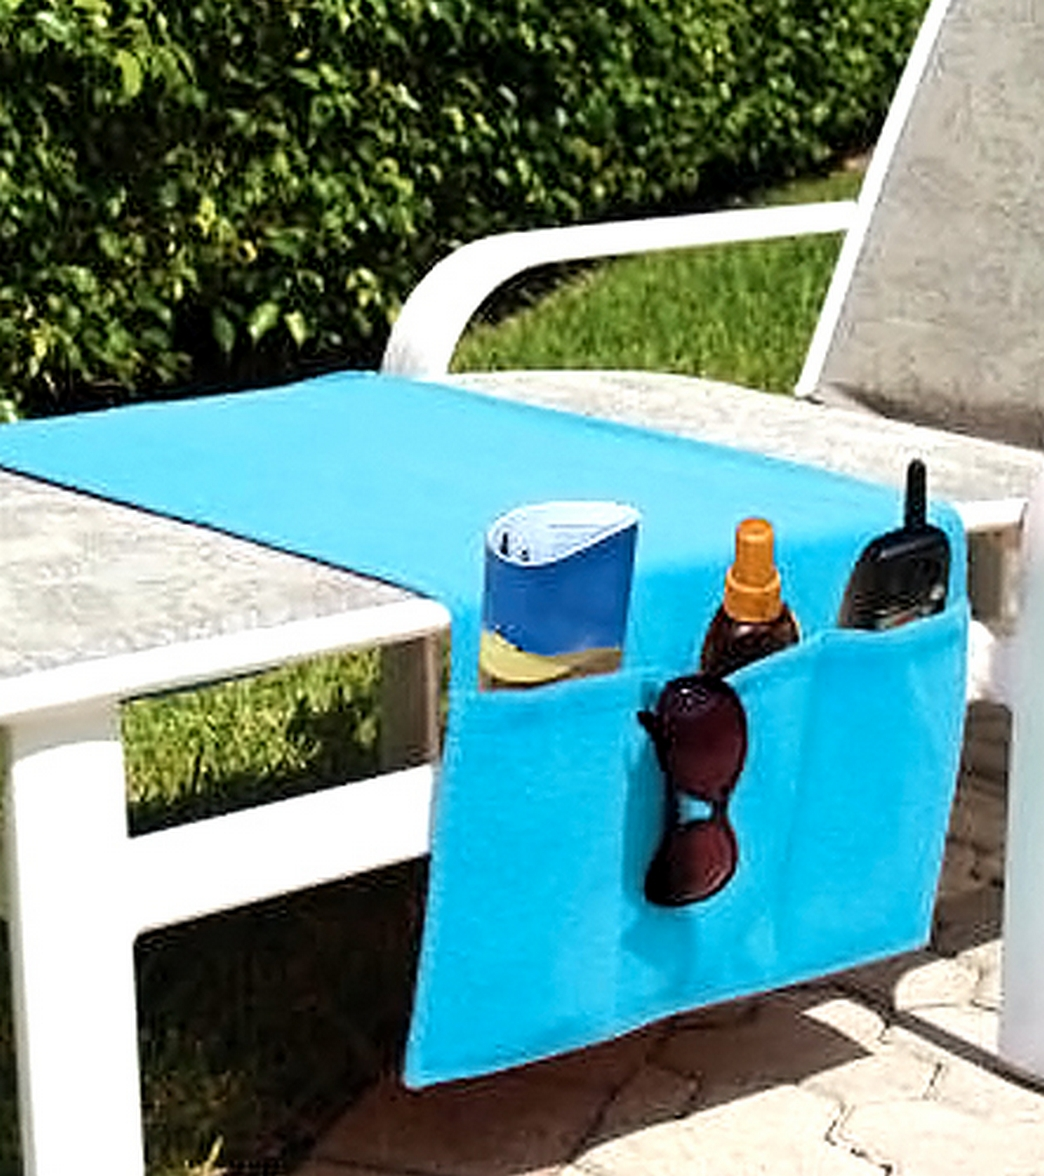 USA Pool & Toy Boca Chaise Organizer at SwimOutlet